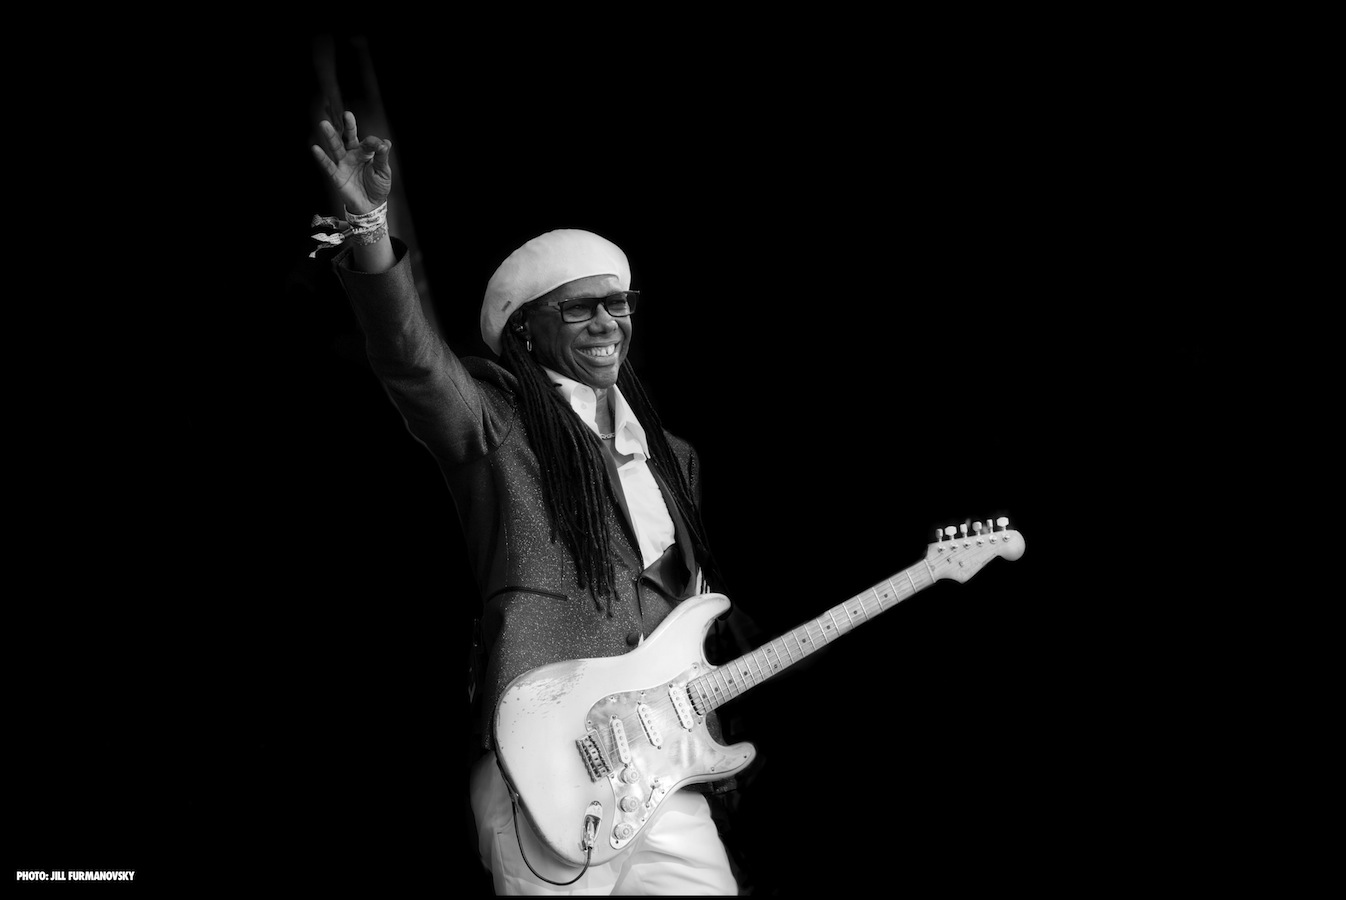 Nile Rodgers (Credit: Jill Furmanovsky)